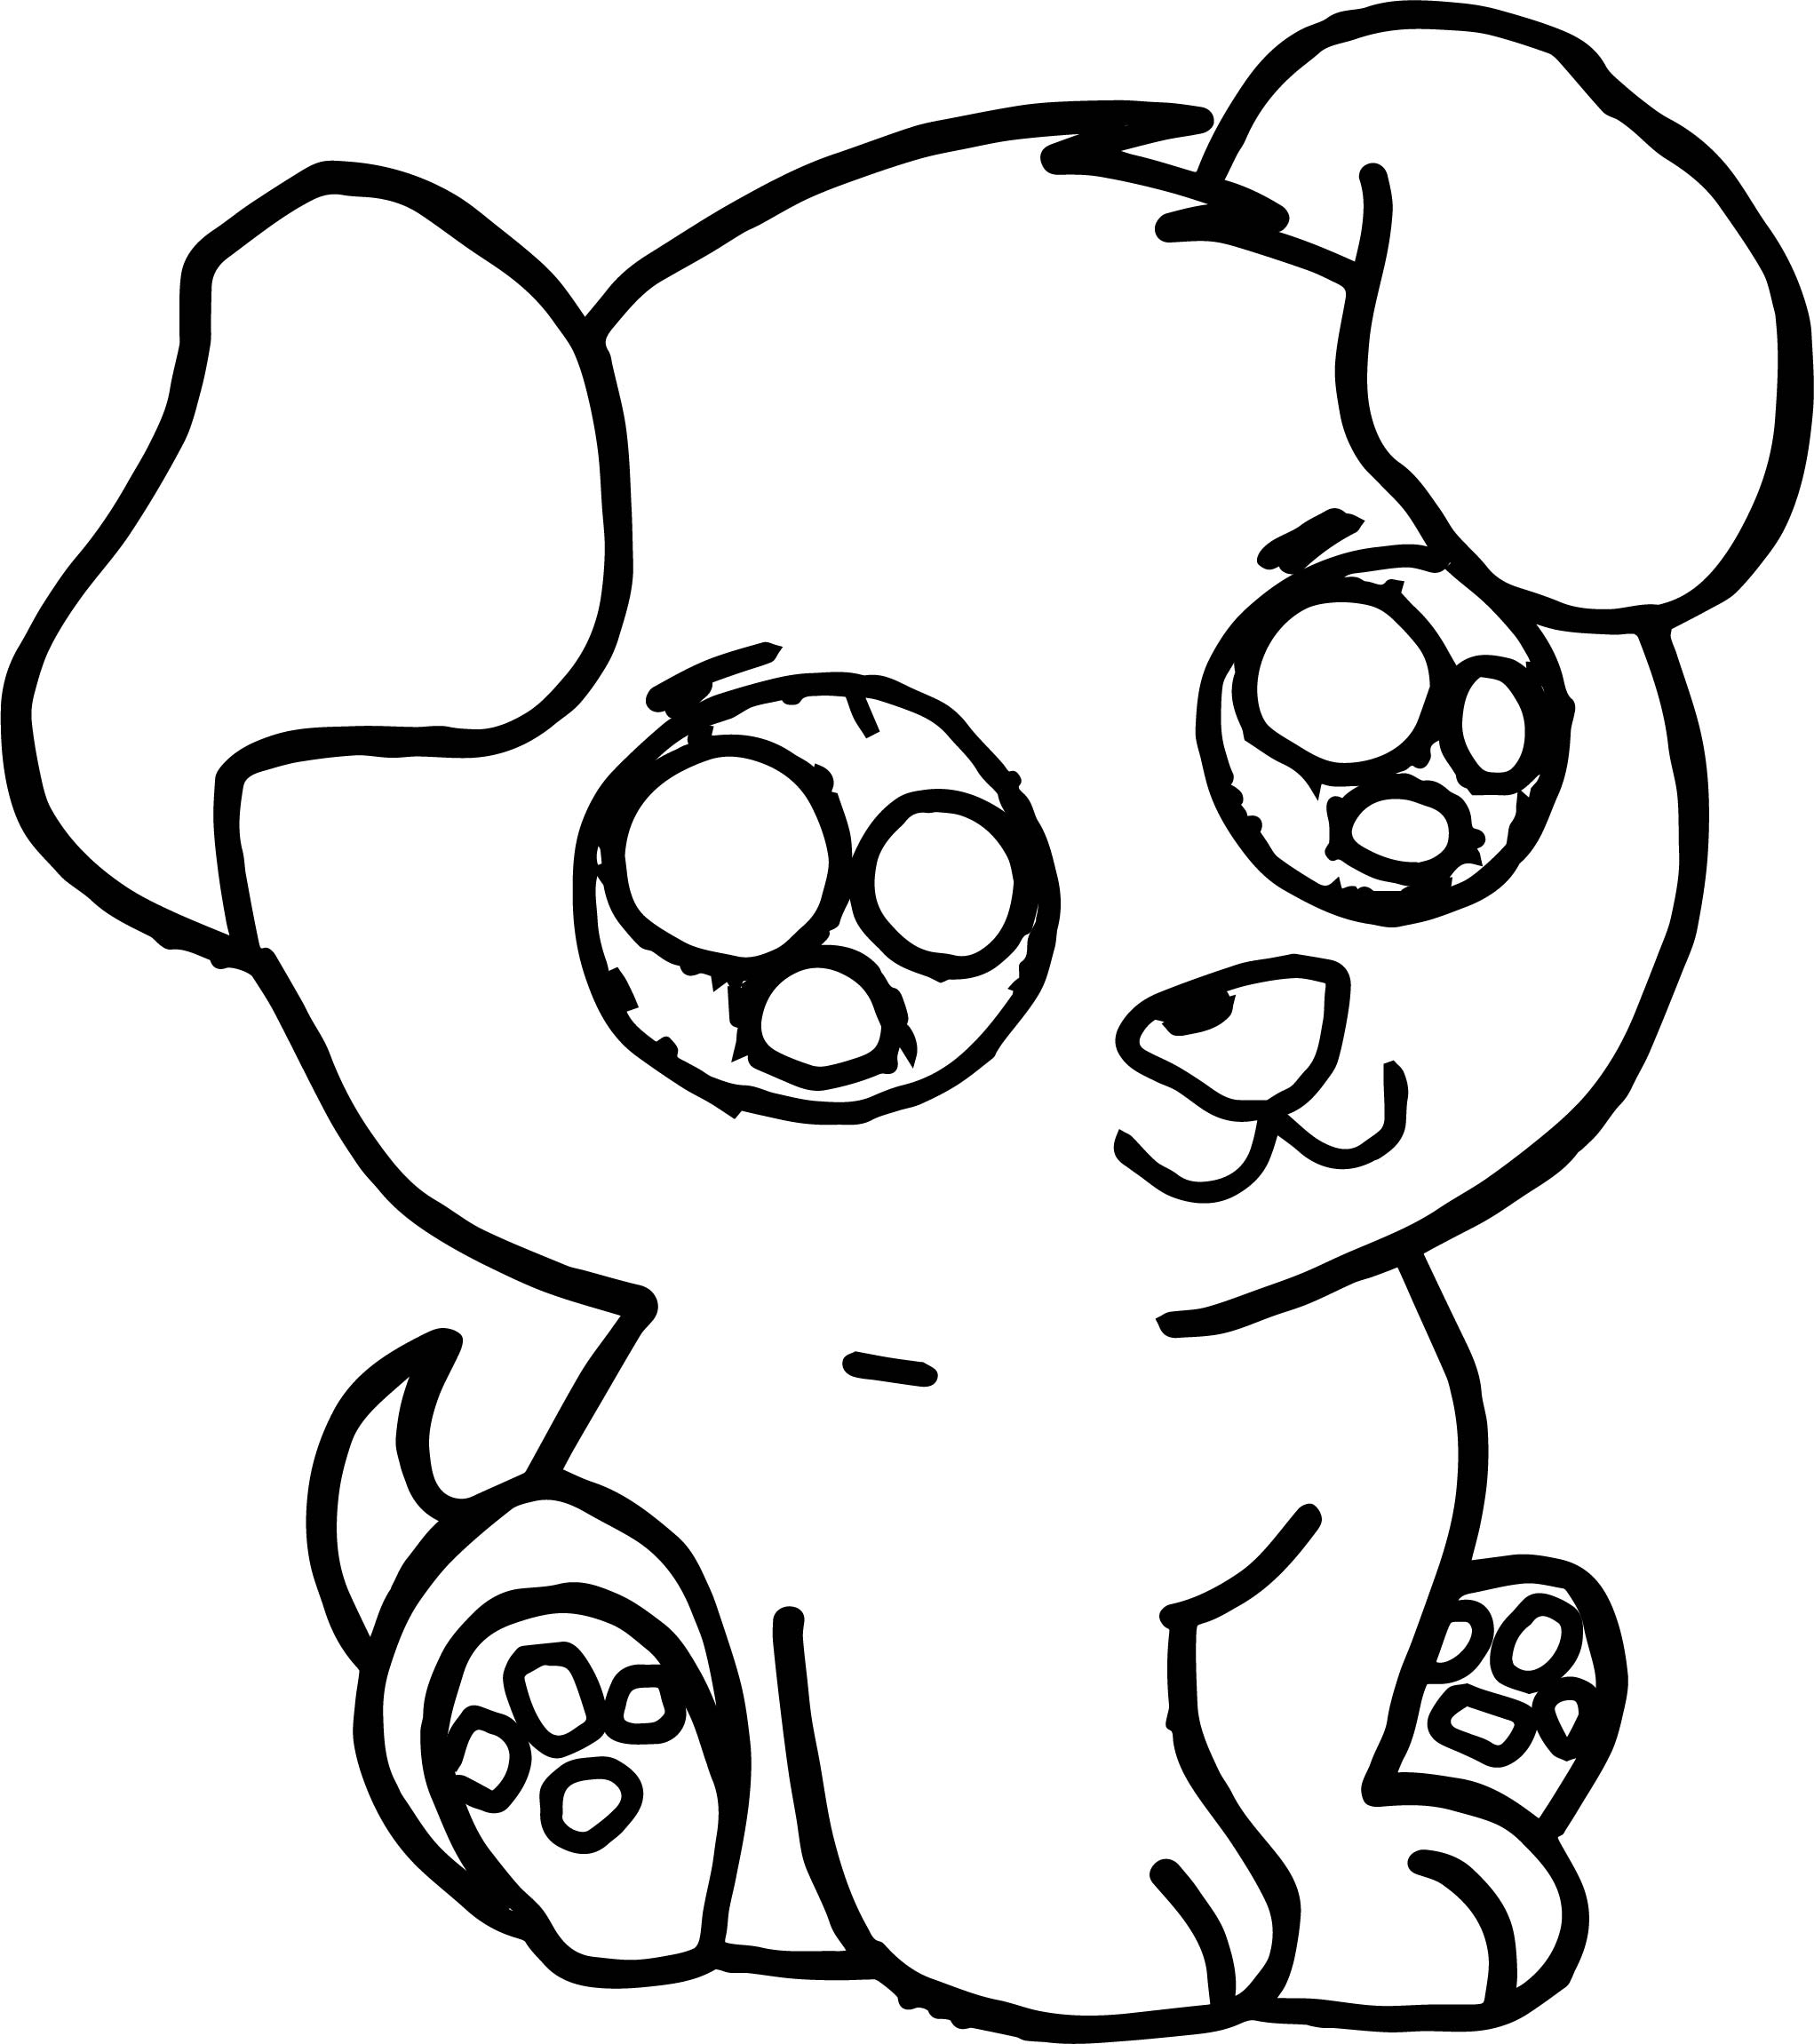 cute dog coloring pages top 25 free printable dog coloring pages online pages dog cute coloring